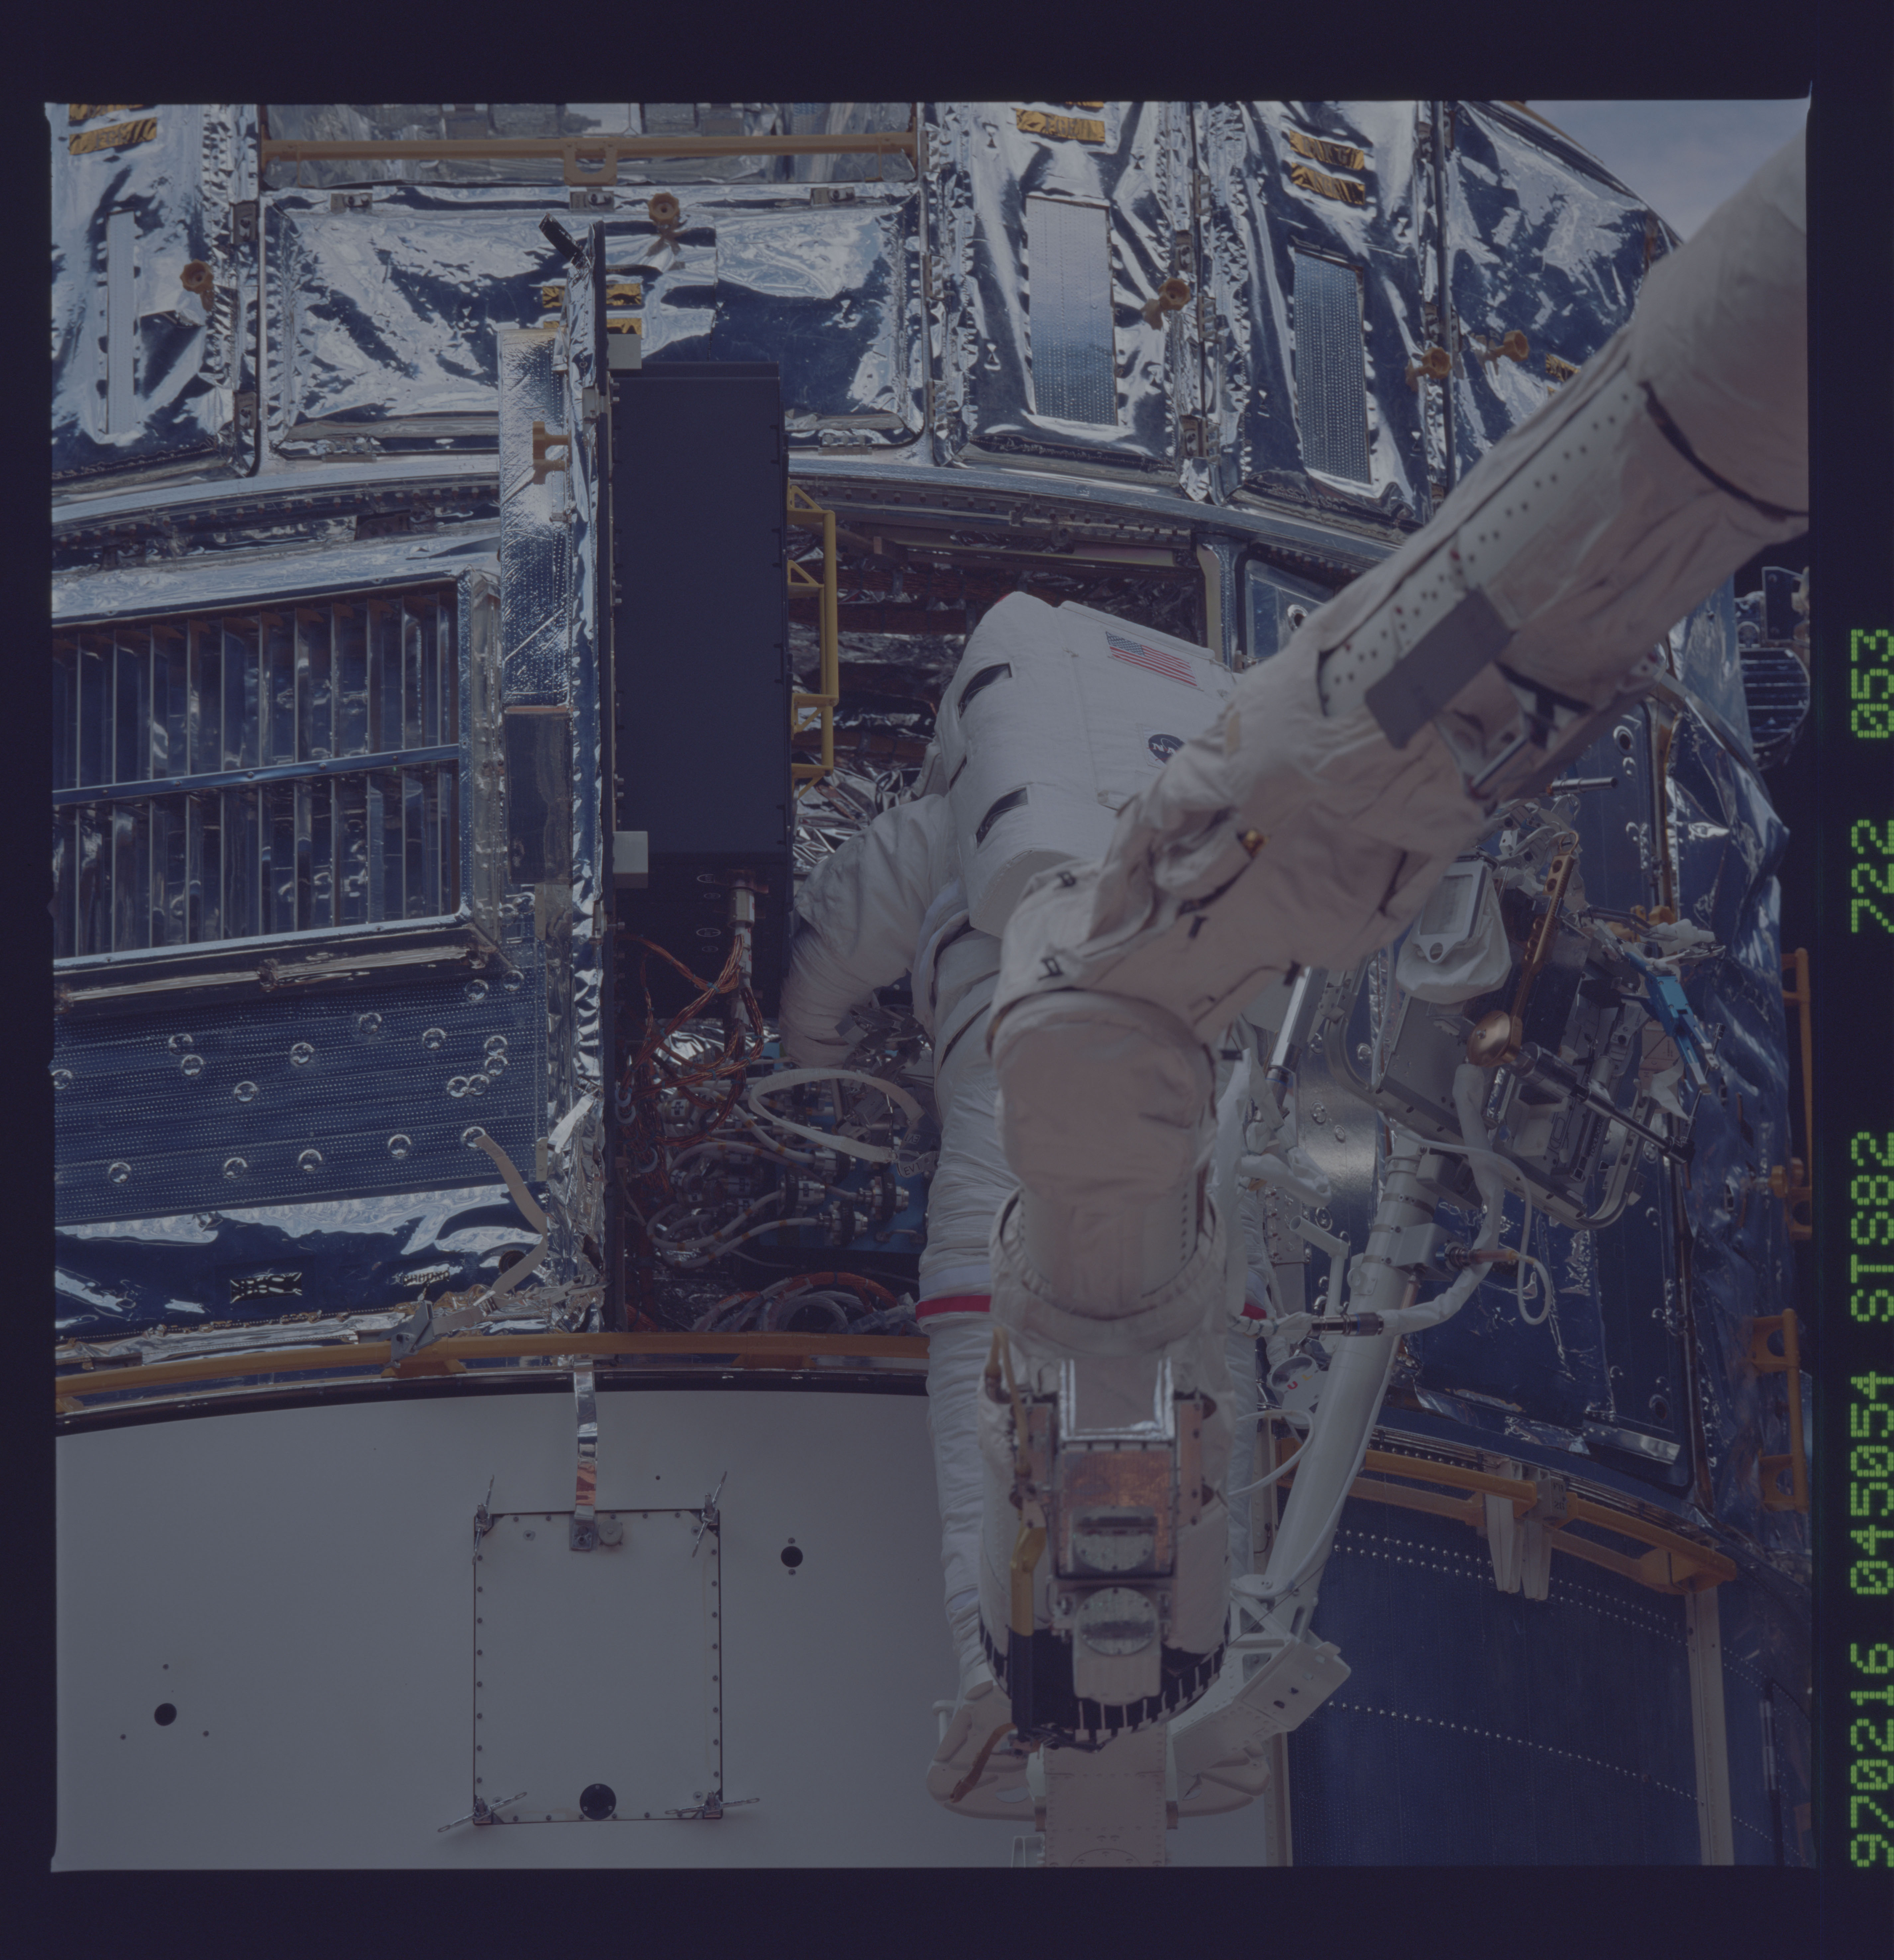 STS082-722-053 - STS-082 - EVA 3 on Flight Day 6 to service the Hubble Space Telescope